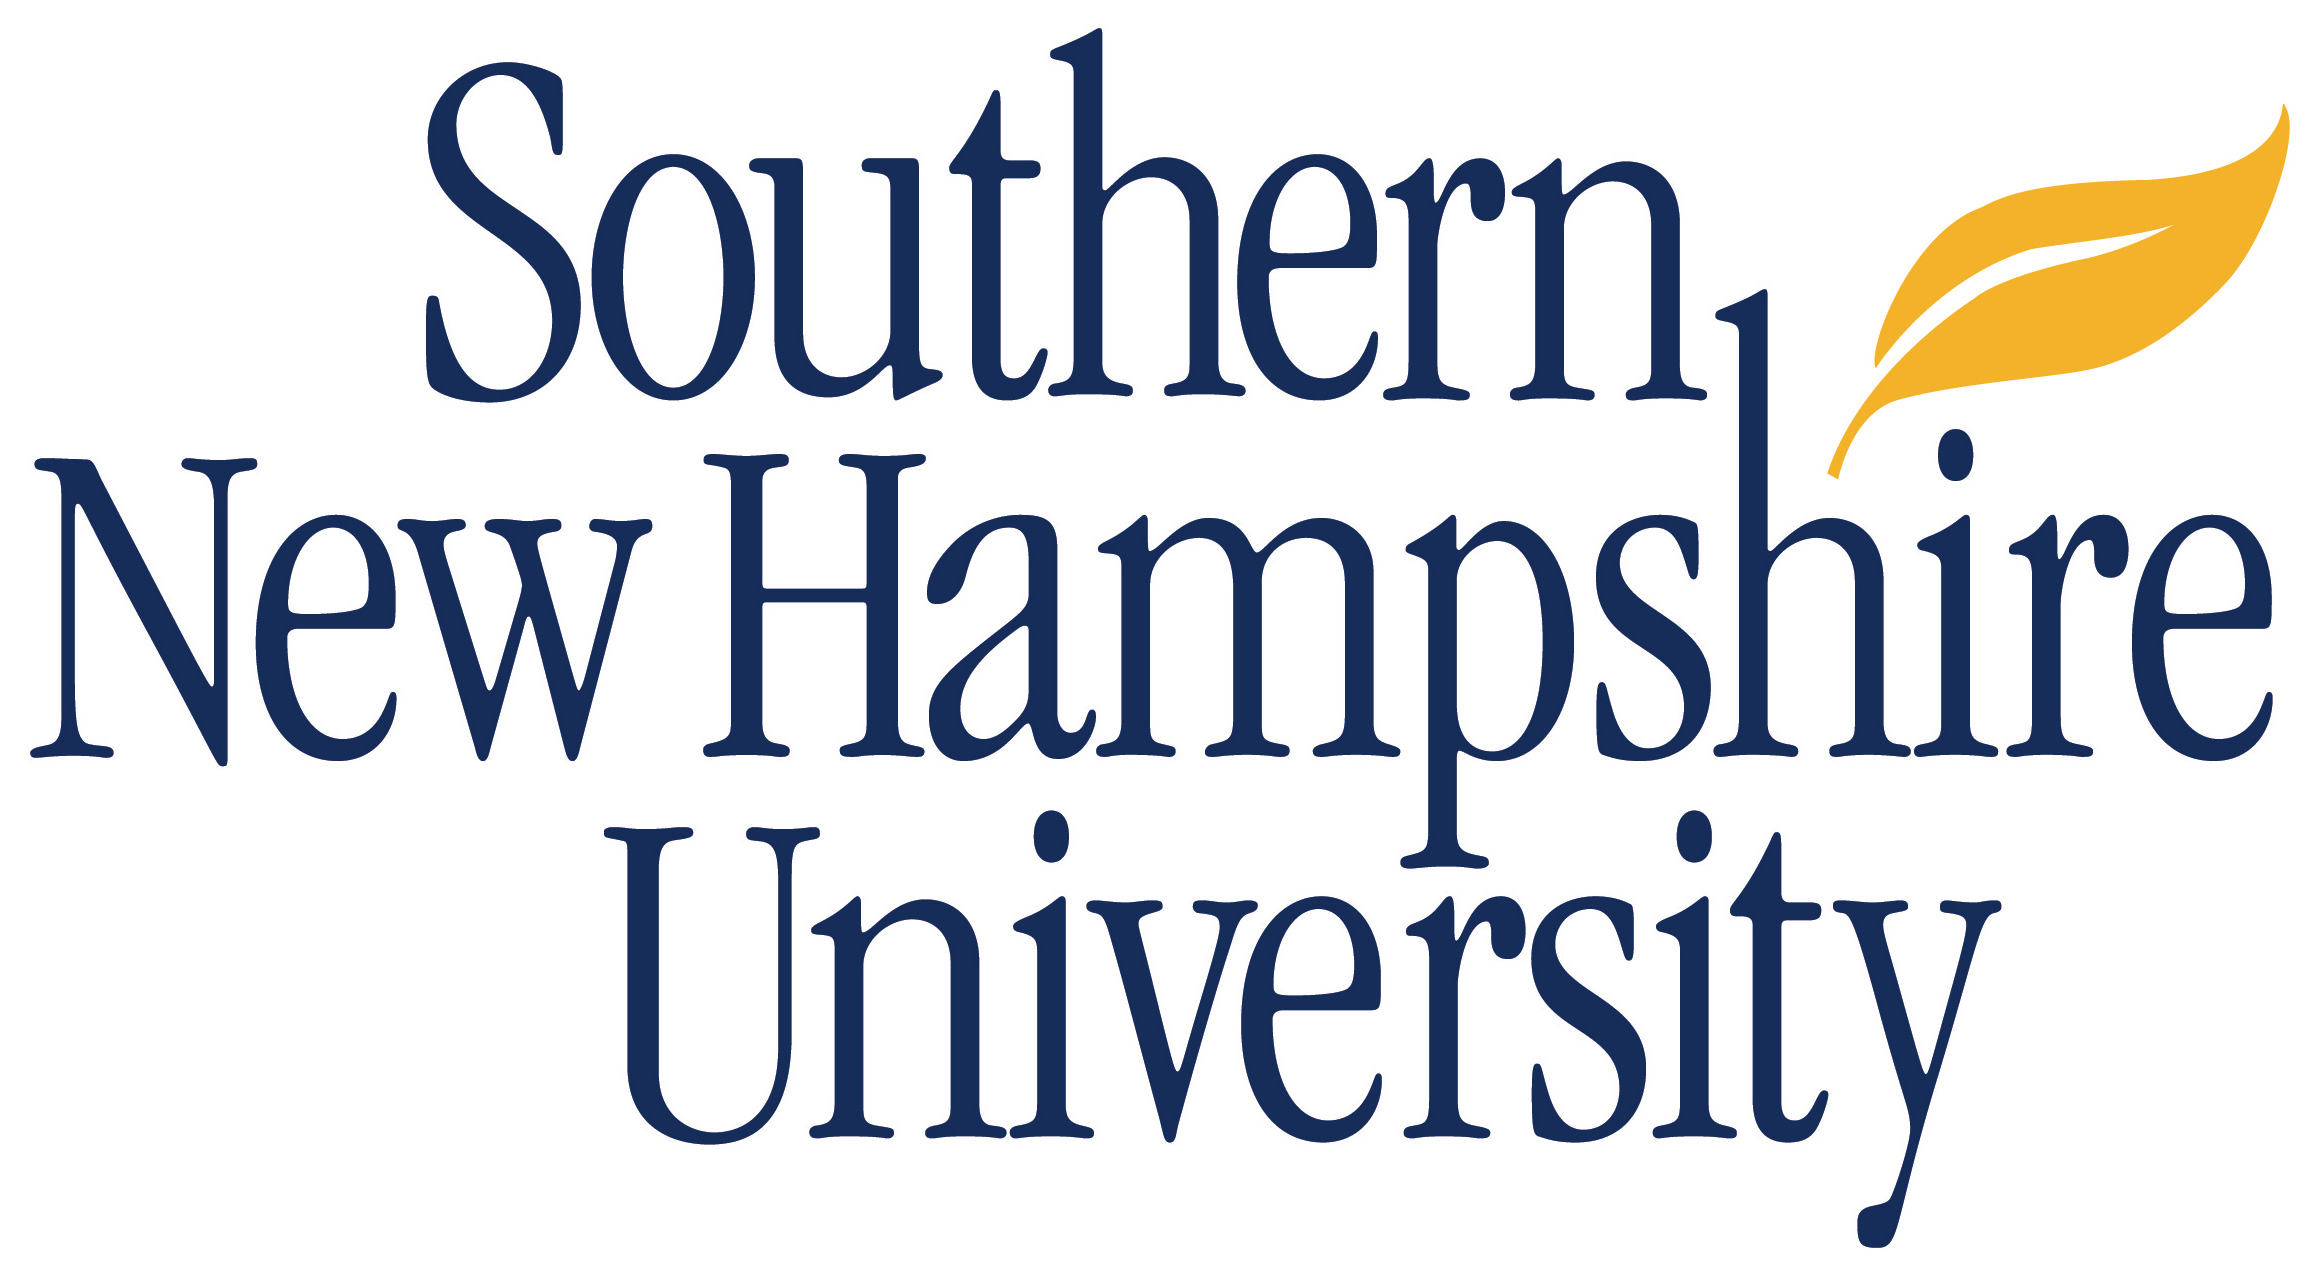 Southern New Hampshire University - Universities for Sports Management Degree